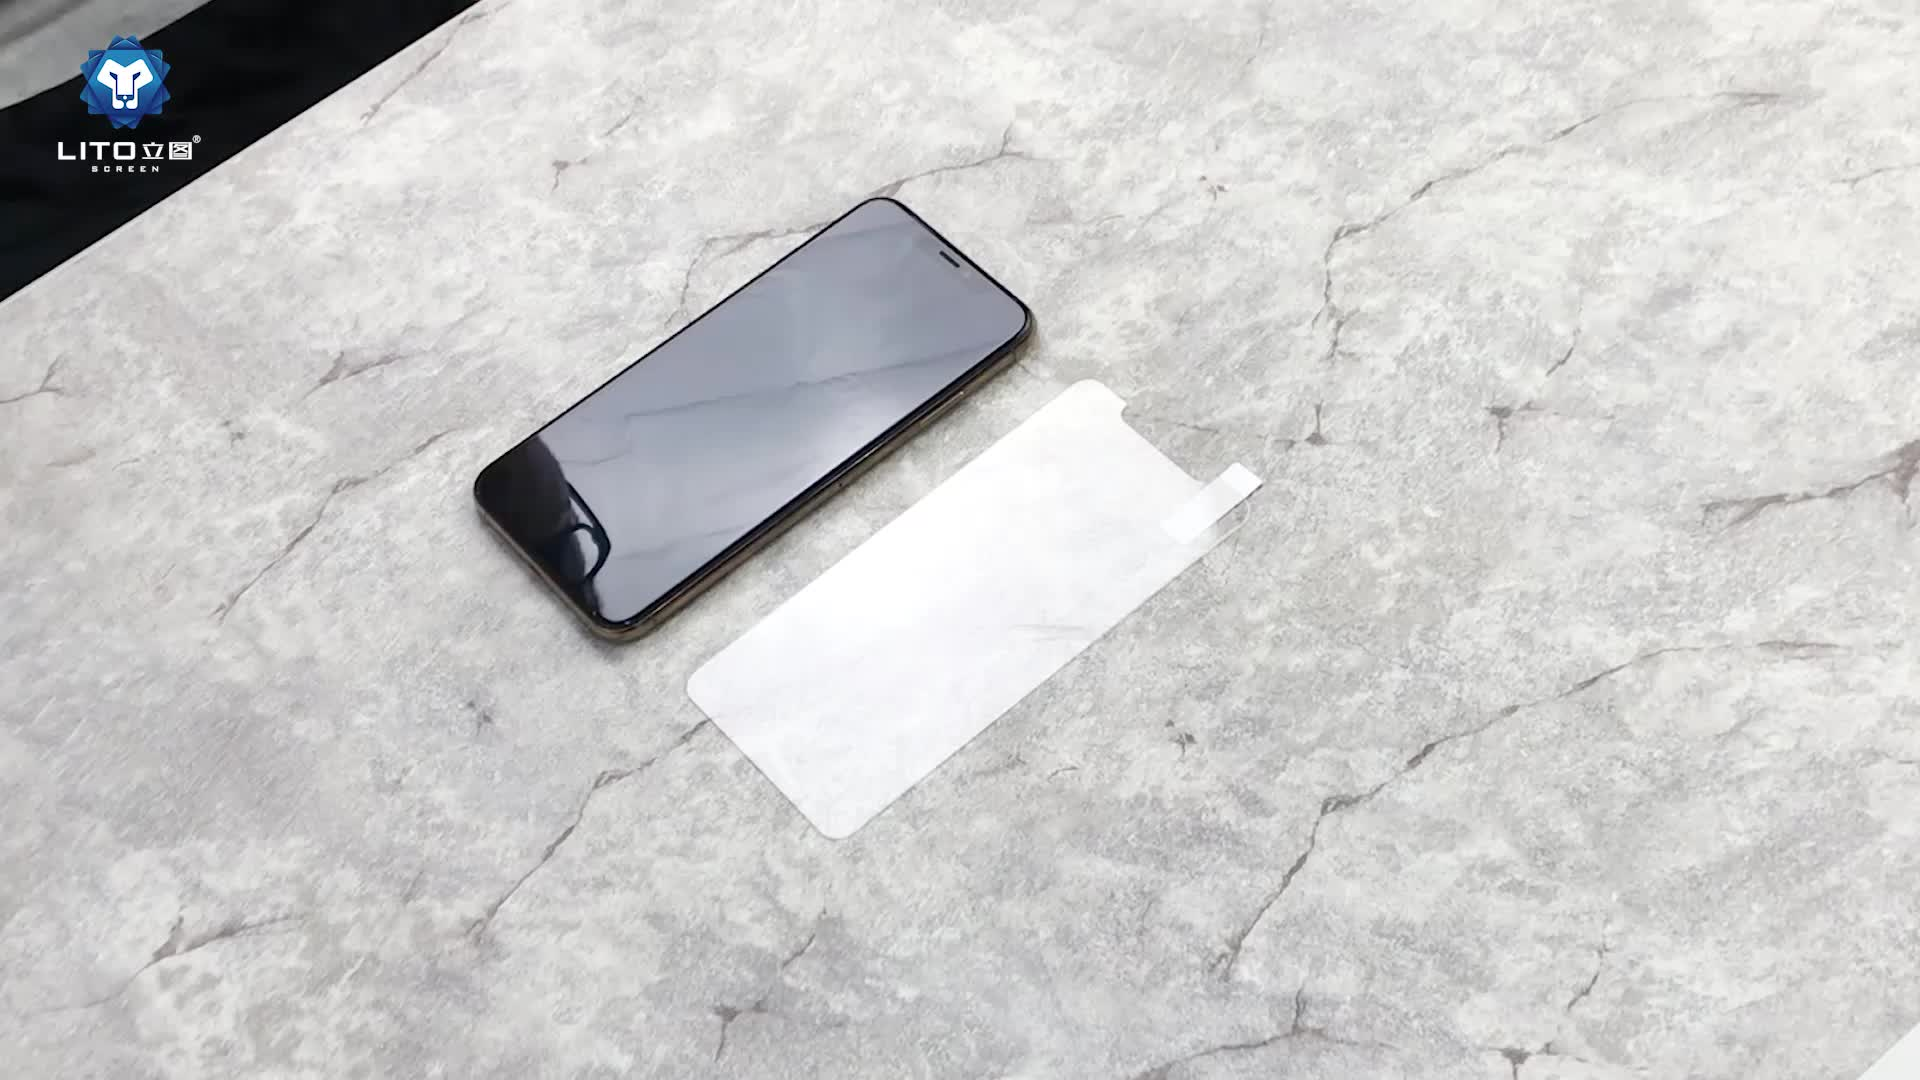 Protective glass for iphone Xs Max screen protector for